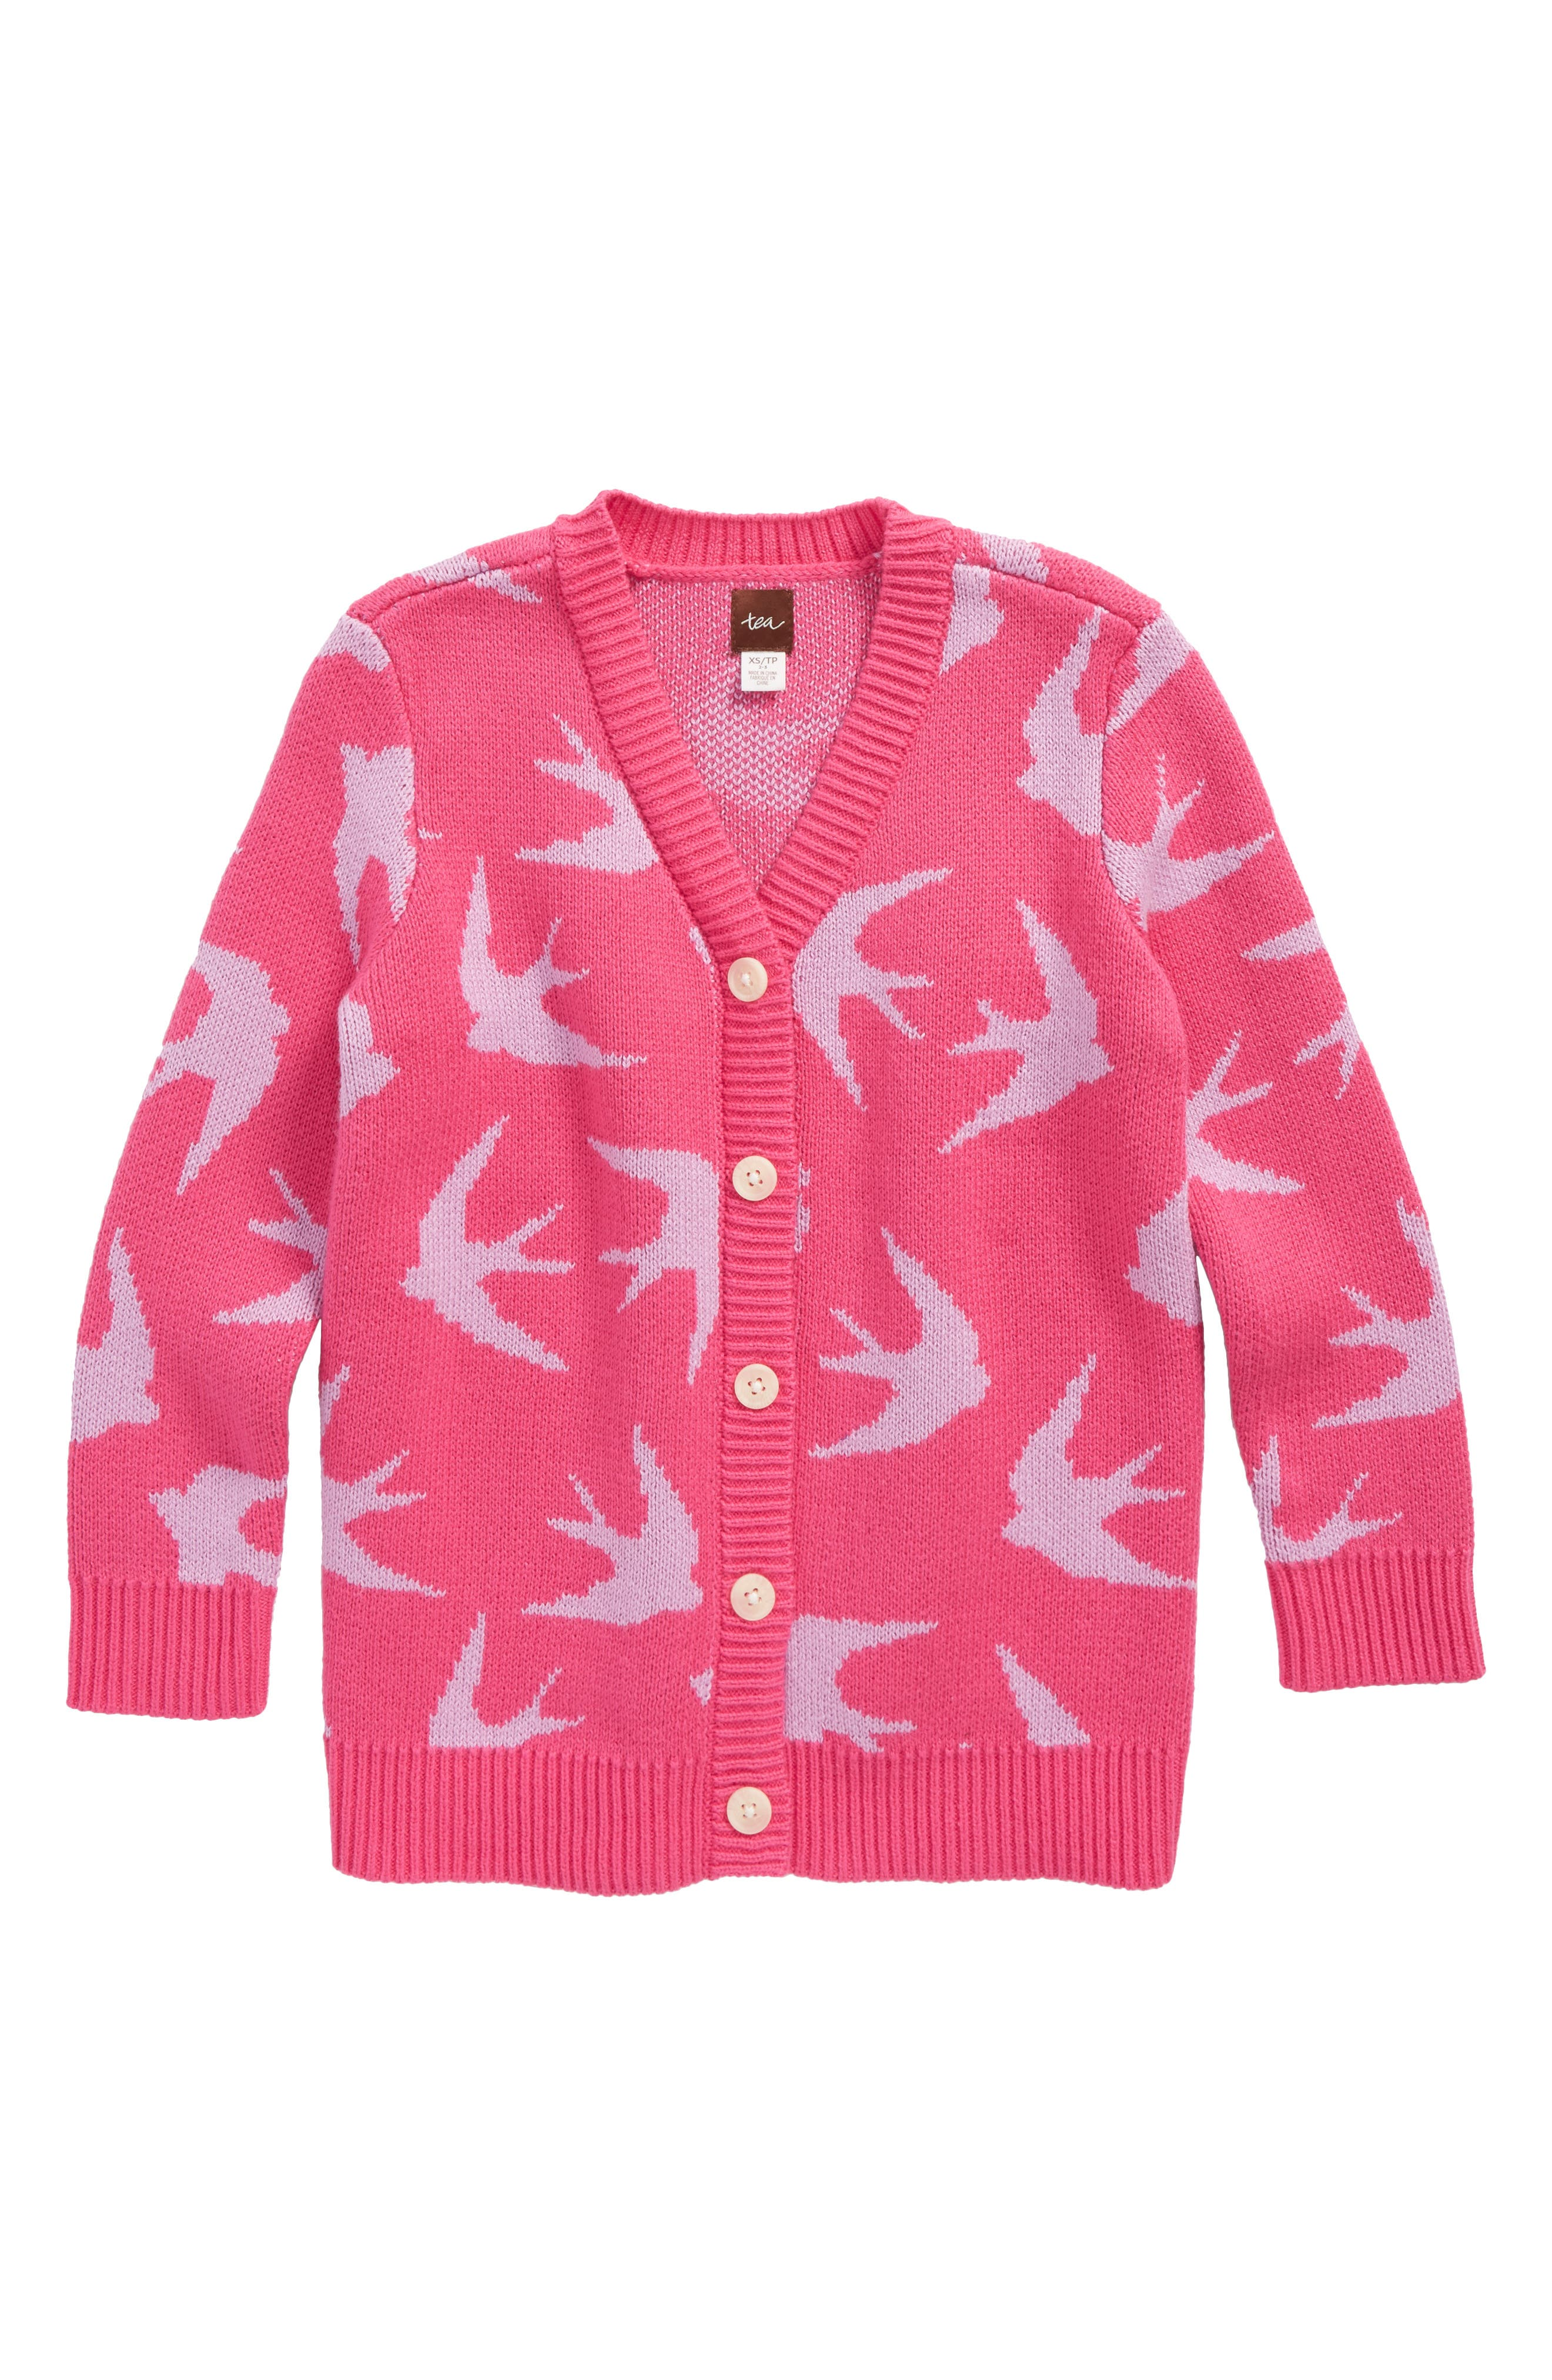 Alternate Image 1 Selected - Tea Collection Snow Bunting Intarsia Knit Cardigan (Toddler Girls, Little Girls & Big Girls)